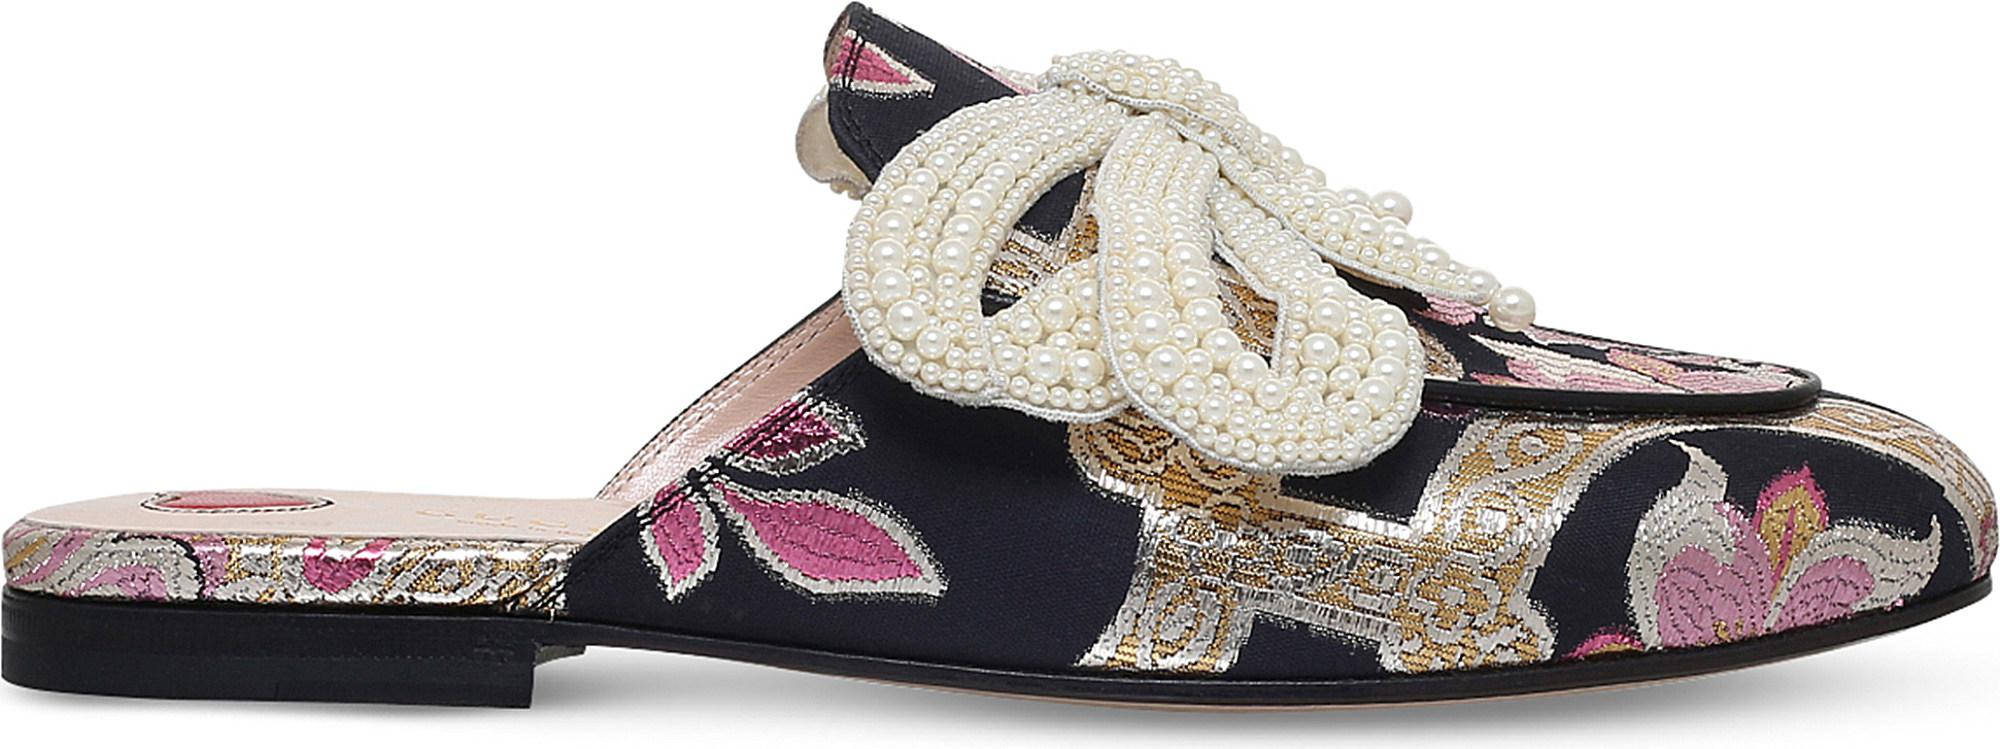 d3f8943f586 Gucci Princetown Chinoiserie Jaquard Slides - Lyst